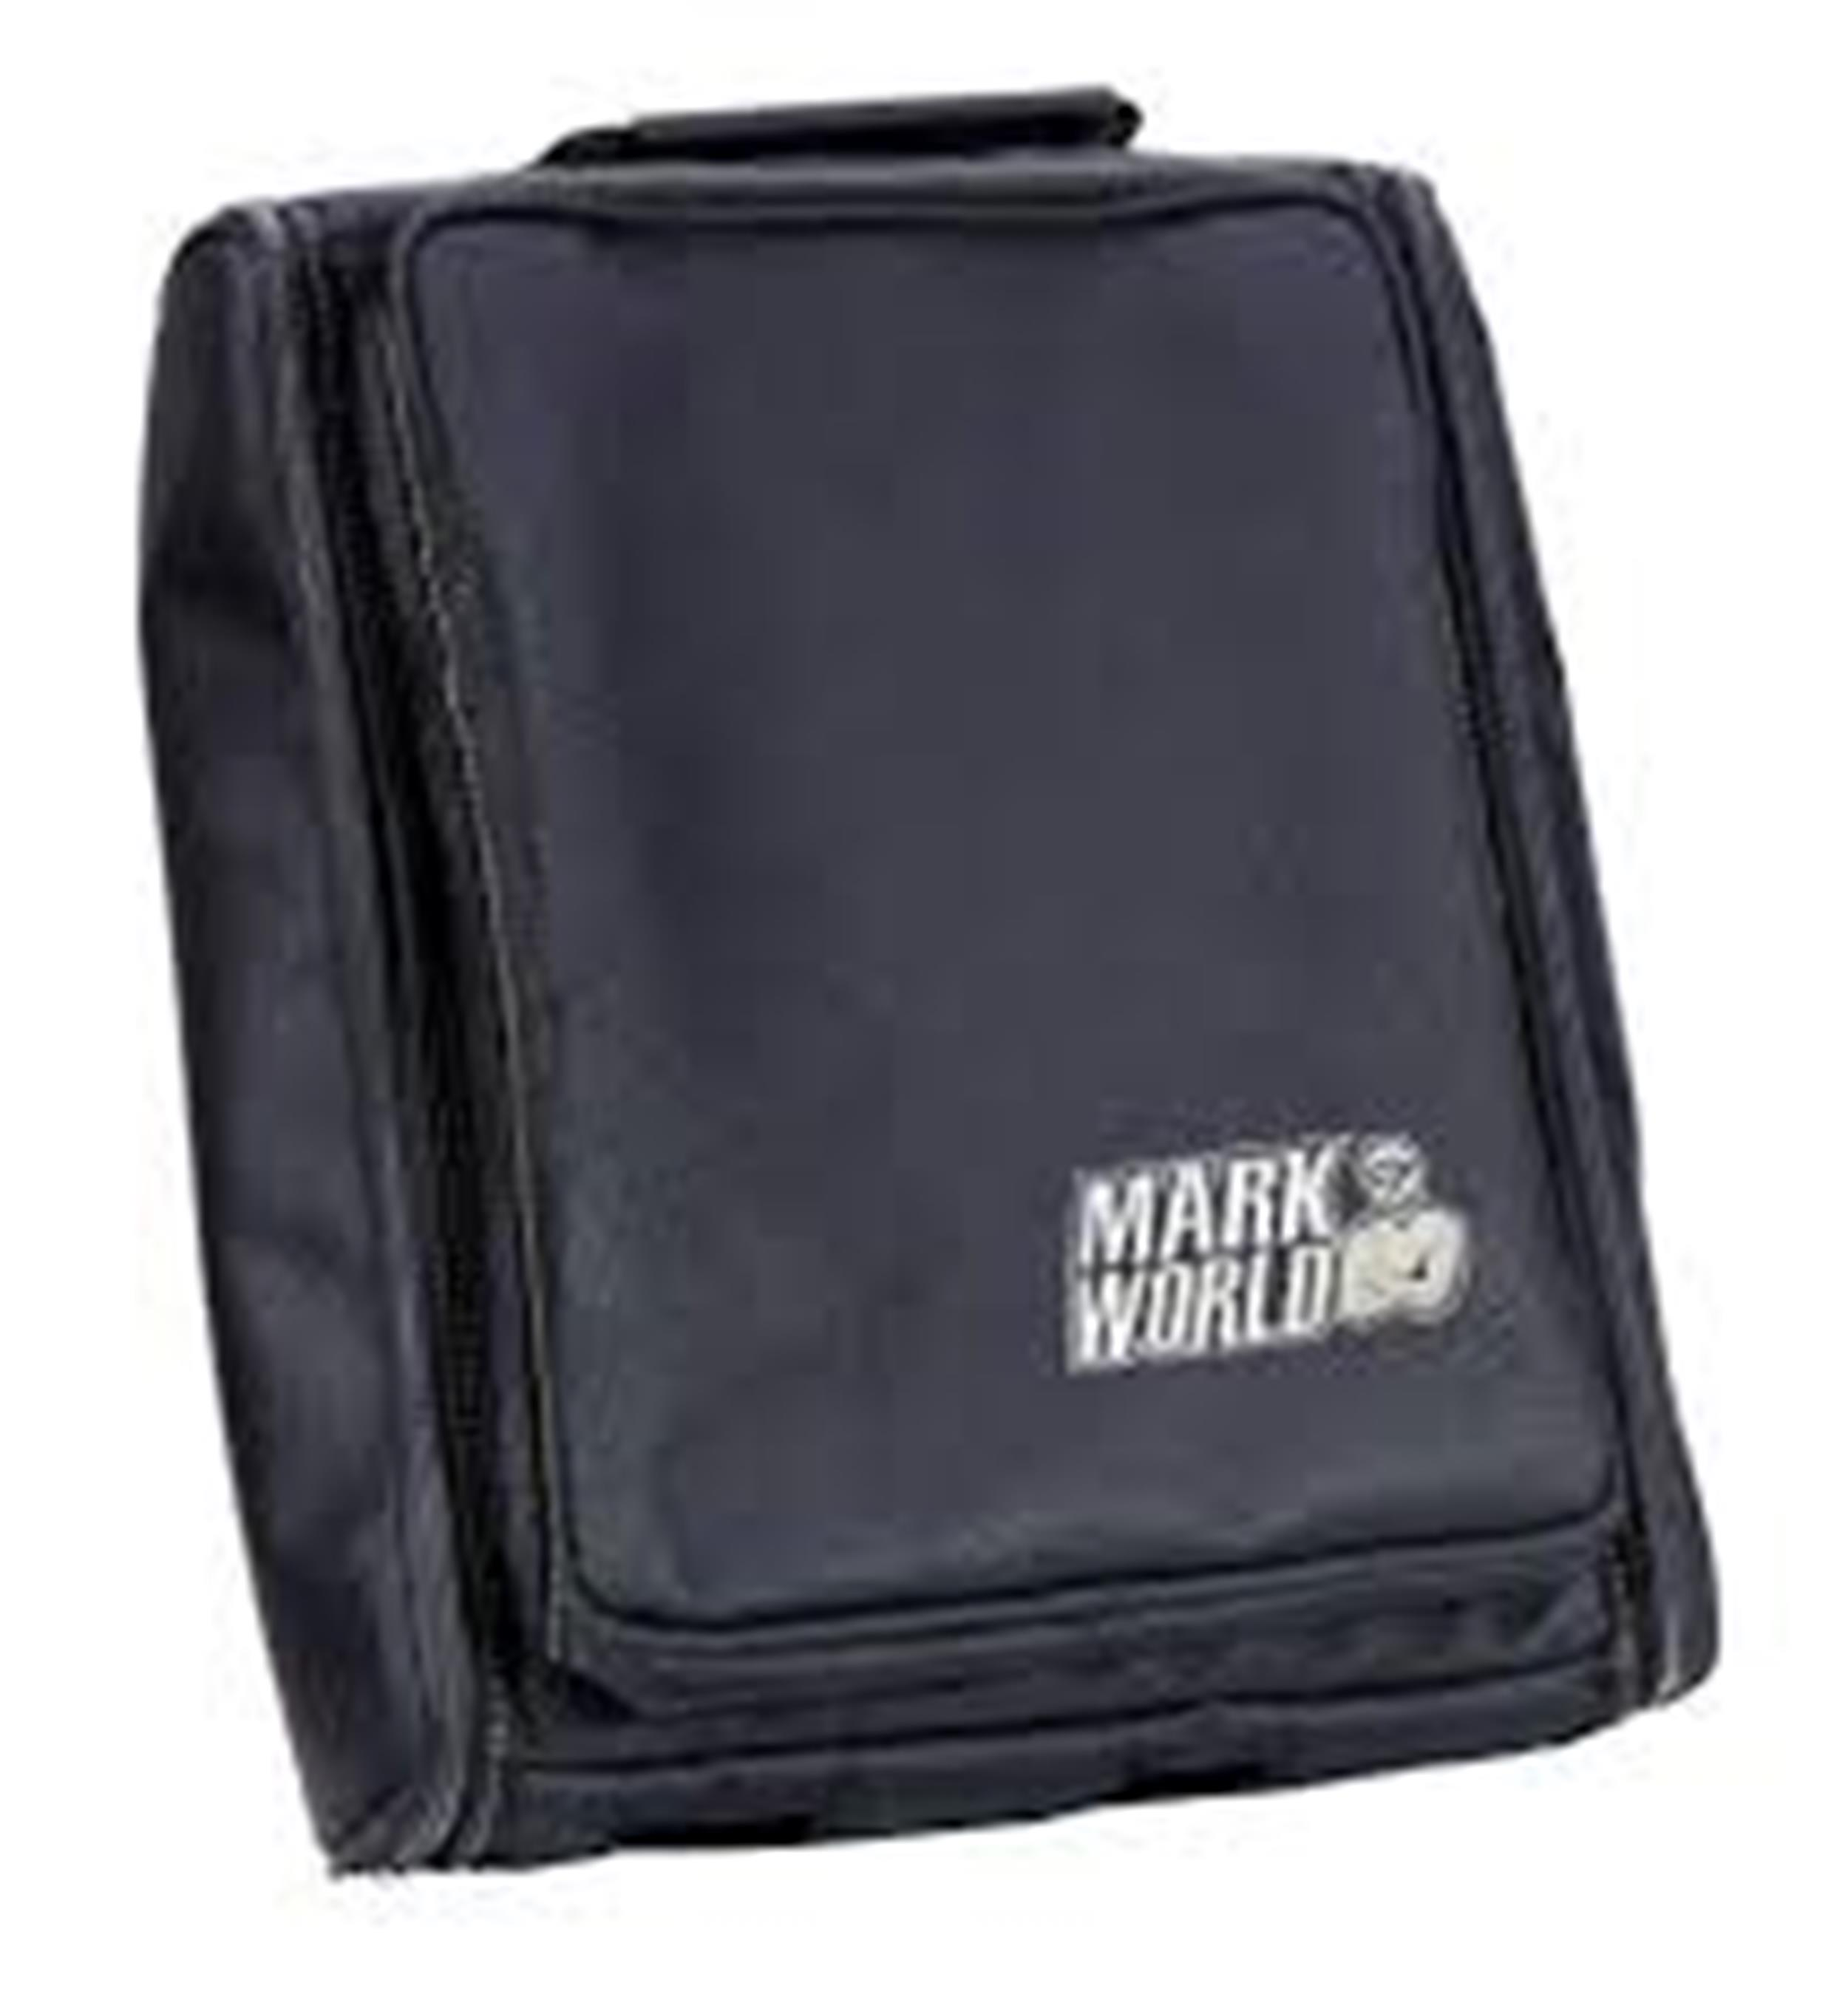 DV MARK MARKWORLD MULTIAMP BAG